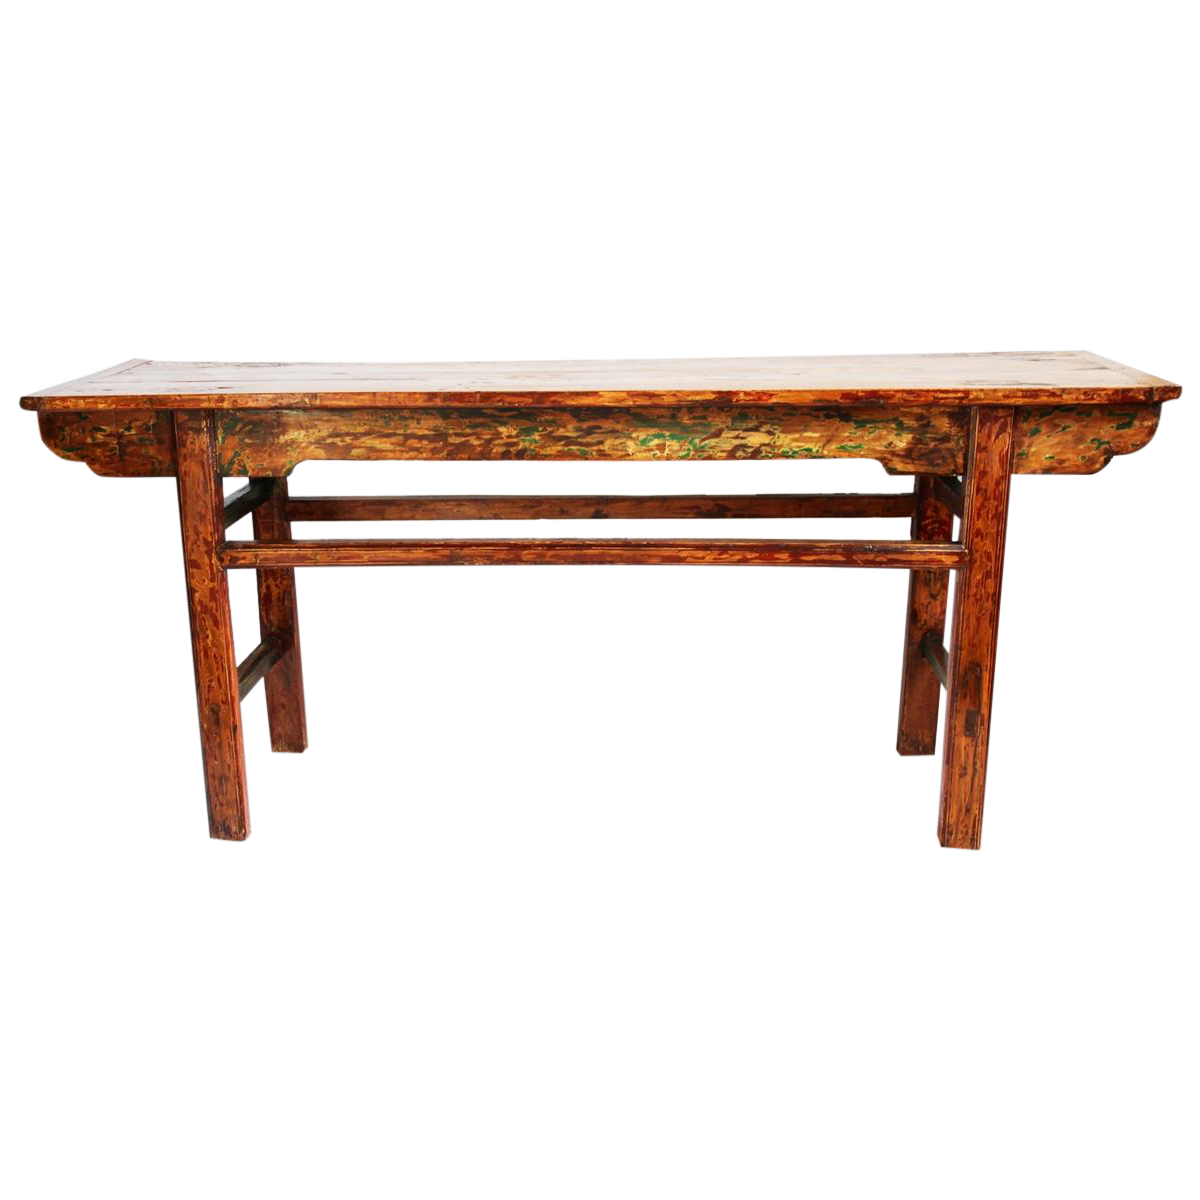 Ming Vintage Console Table Chairish : ming vintage console table 3068 from www.chairish.com size 1200 x 1200 png 438kB